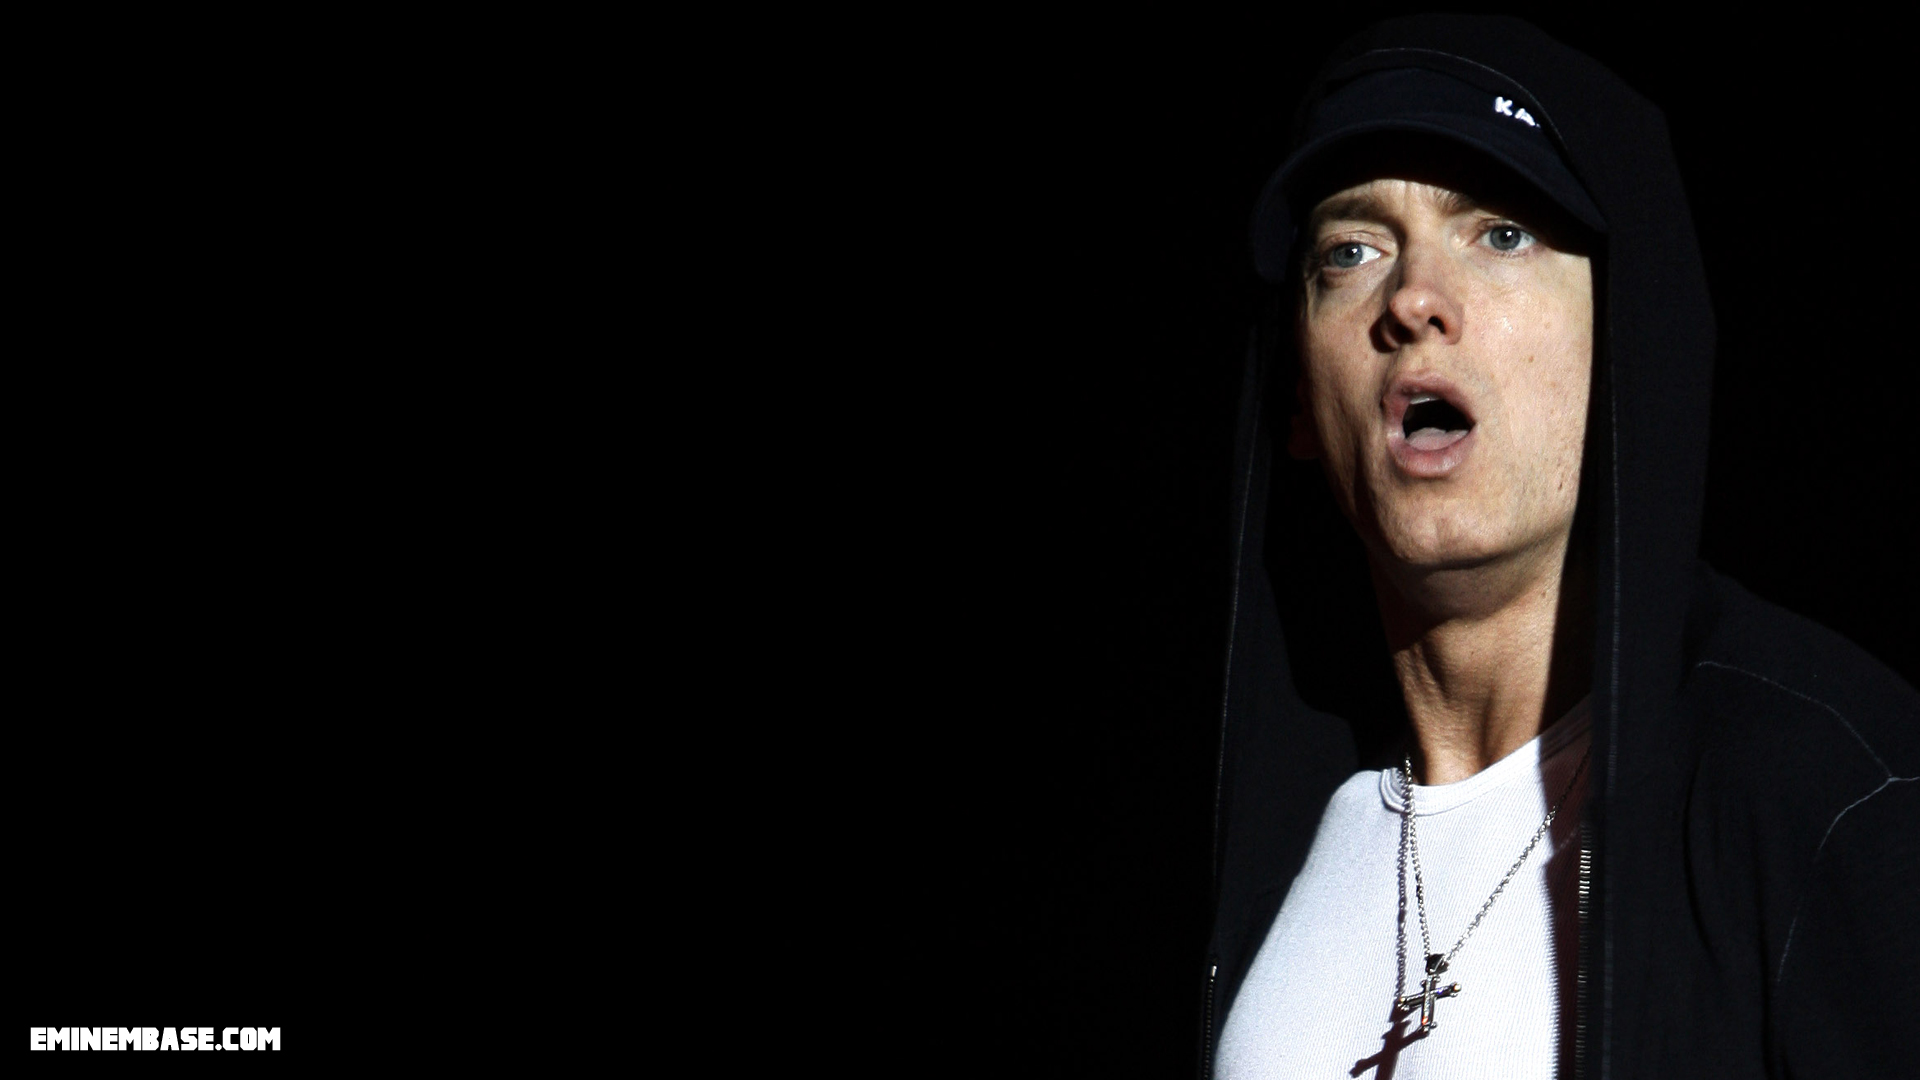 Eminem Not Afraid Quotes wallpaper   1390020 1920x1080